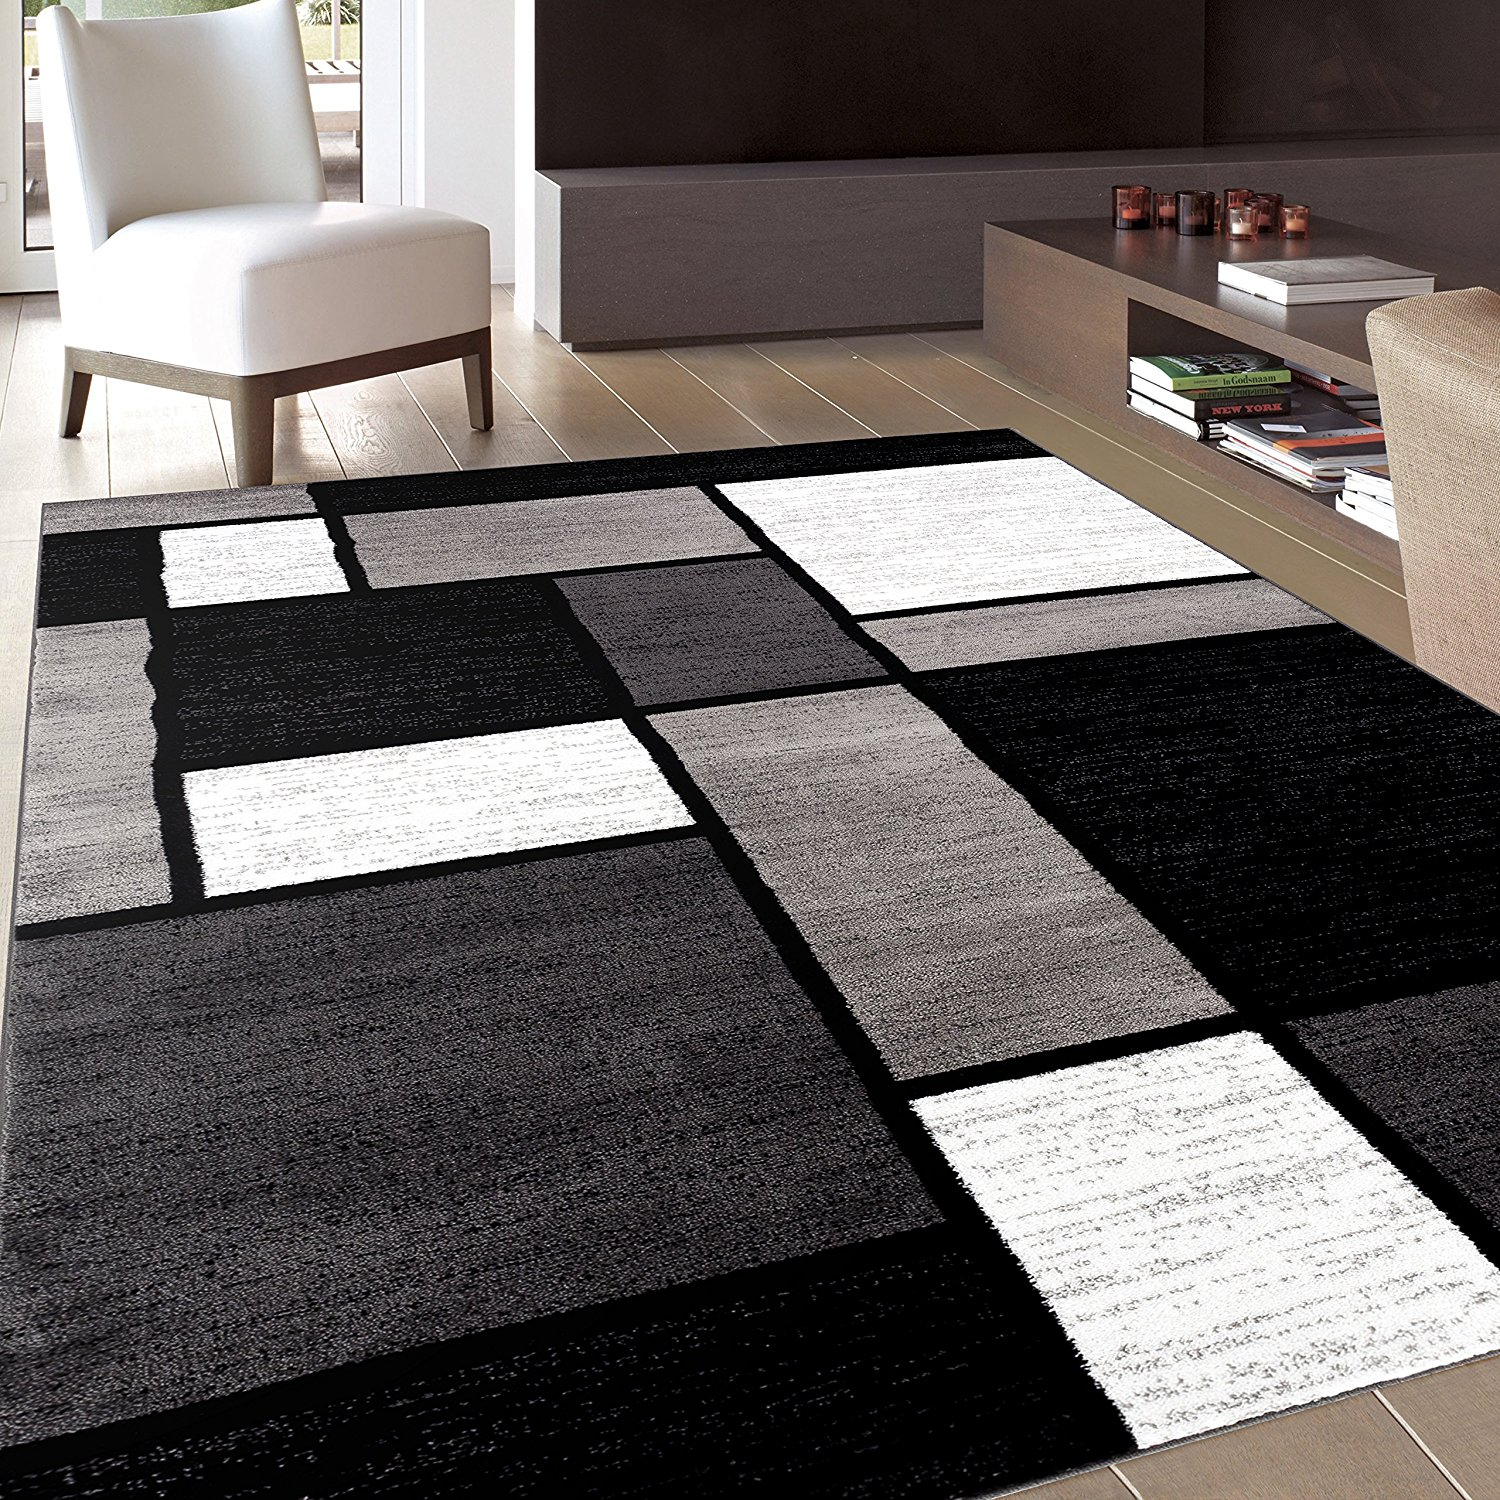 Best rug black and white area rugs amazon.com: rug decor contemporary modern boxes  area MEOUIBP